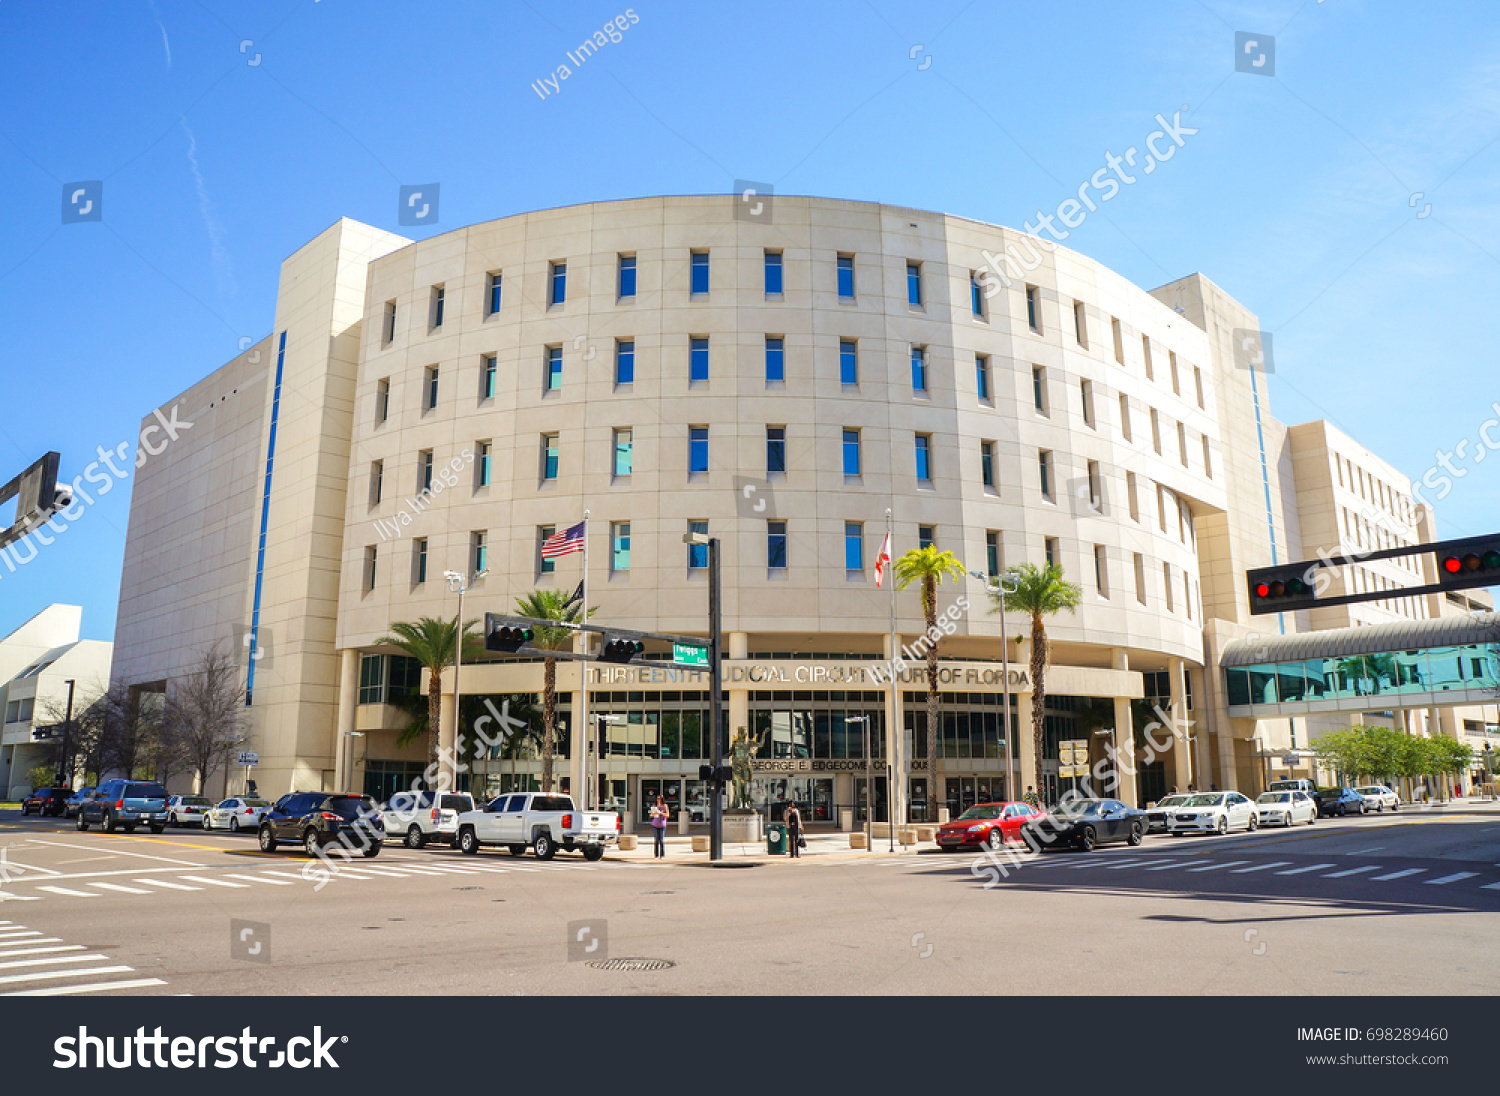 People Going Thirteenth Judicial Circuit Court Stock Photo Edit Now To The Edgecomb Courthouse Downtown Tampa Florida